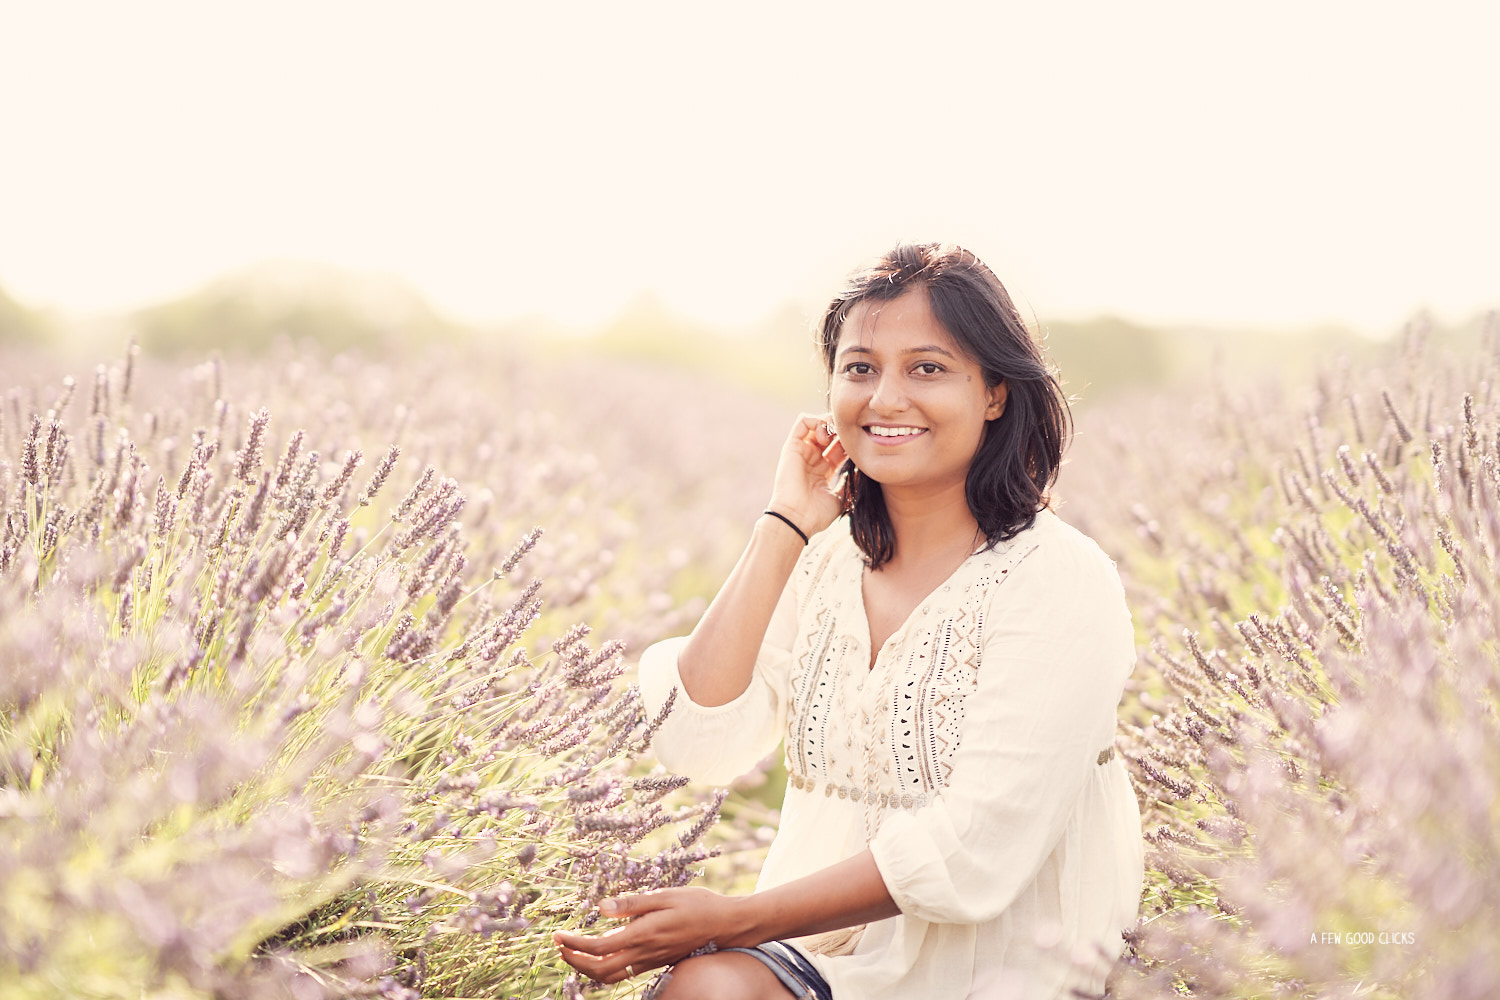 Hi, I'm Priyanka, founder photographer, digital marketer, runner and the curator of a few good clicks  photography blog . From creating fascinating pictures to post processing them, from meeting myriad of people to learning new skills - there is a lot that goes on behind running a photography business. You will hear about my real life experience with people, food and travel so stay a while!